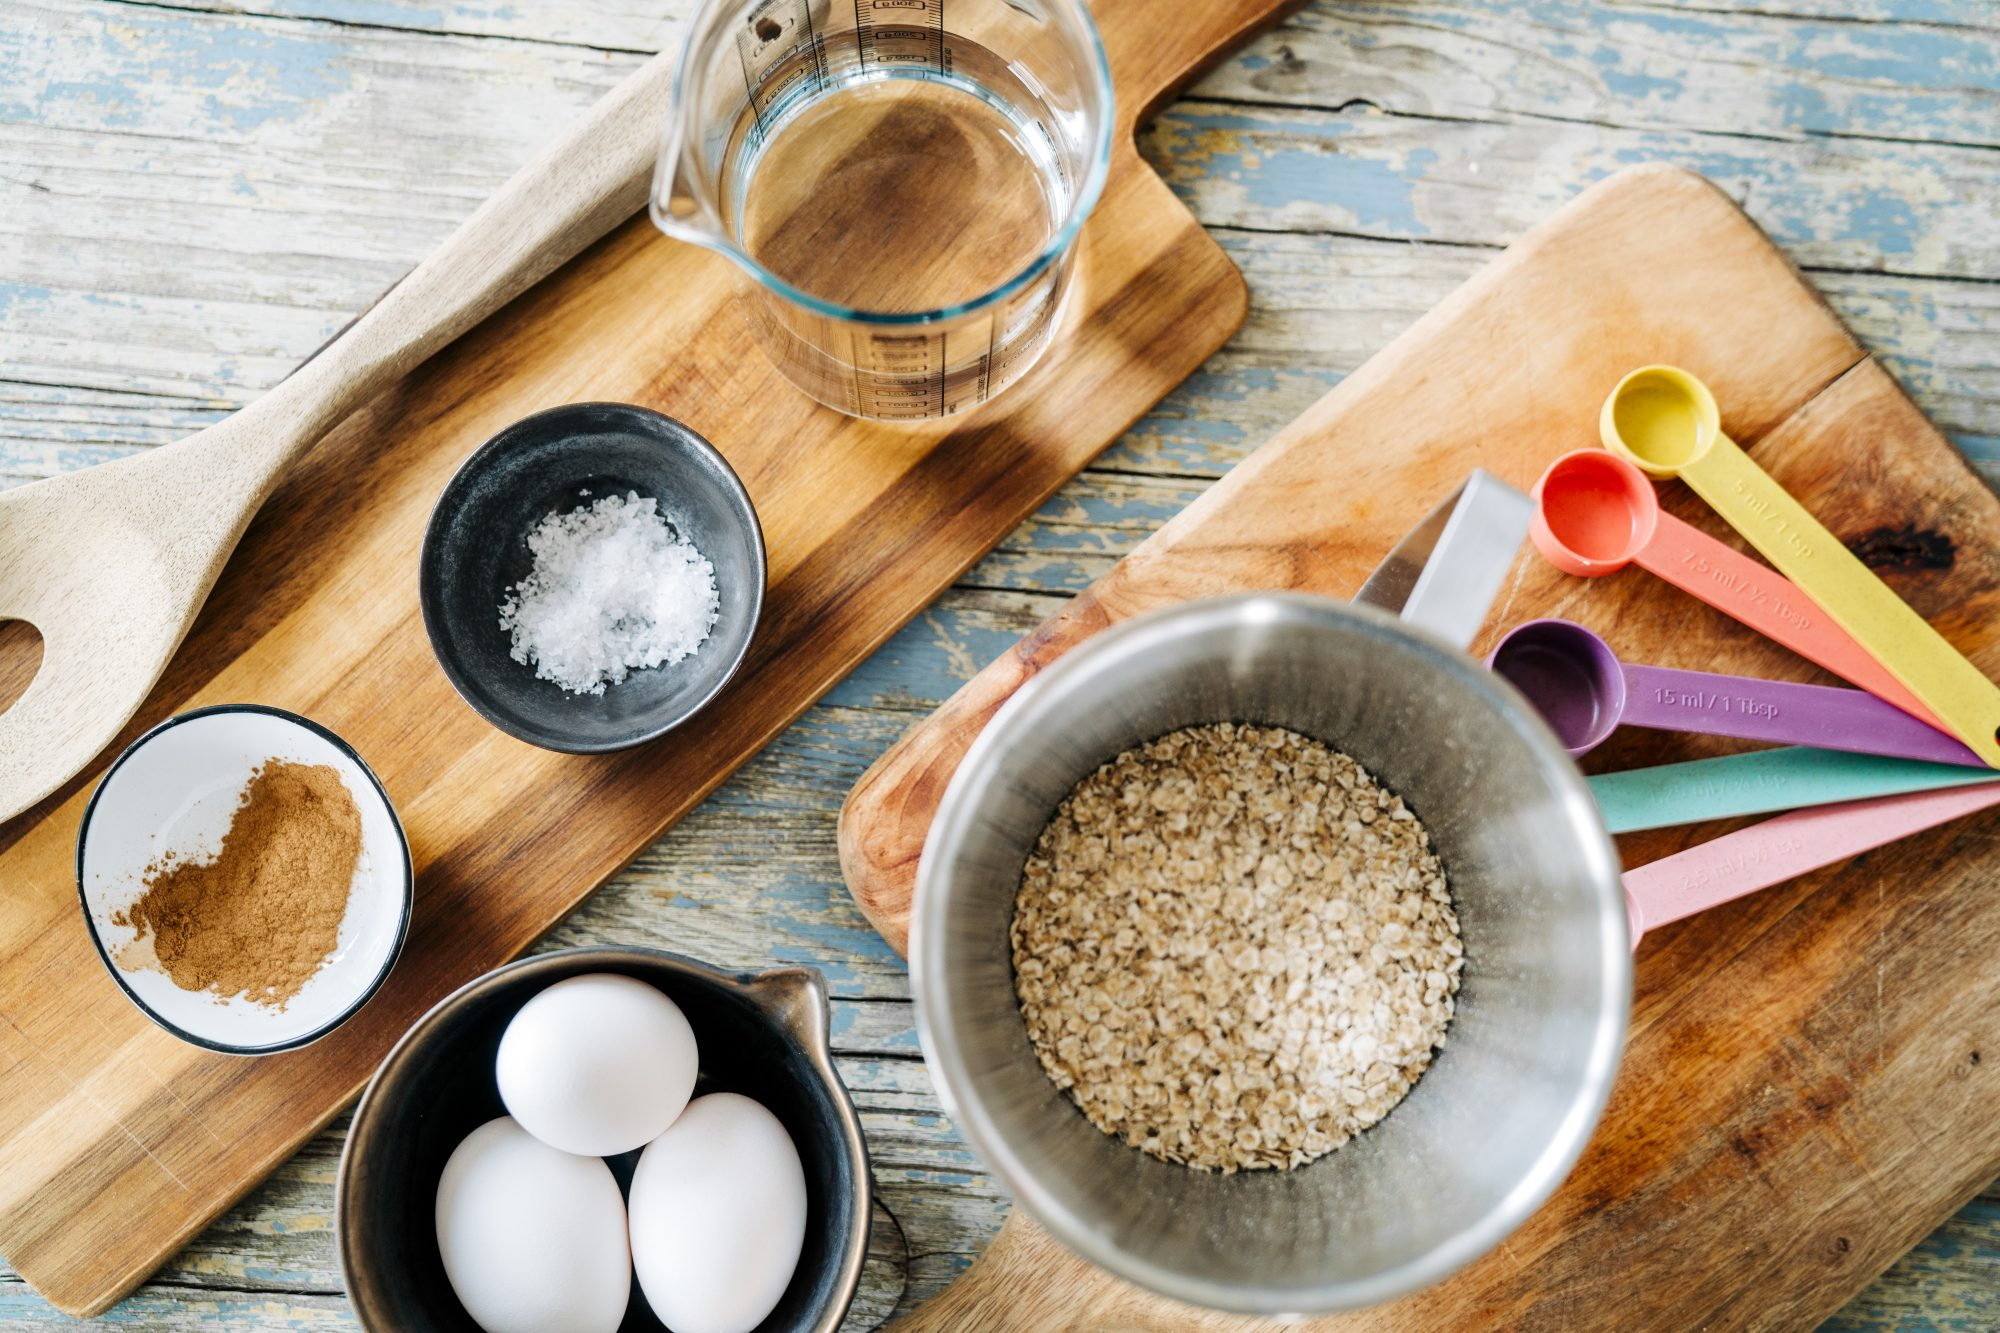 Ingredients for baking homemade home